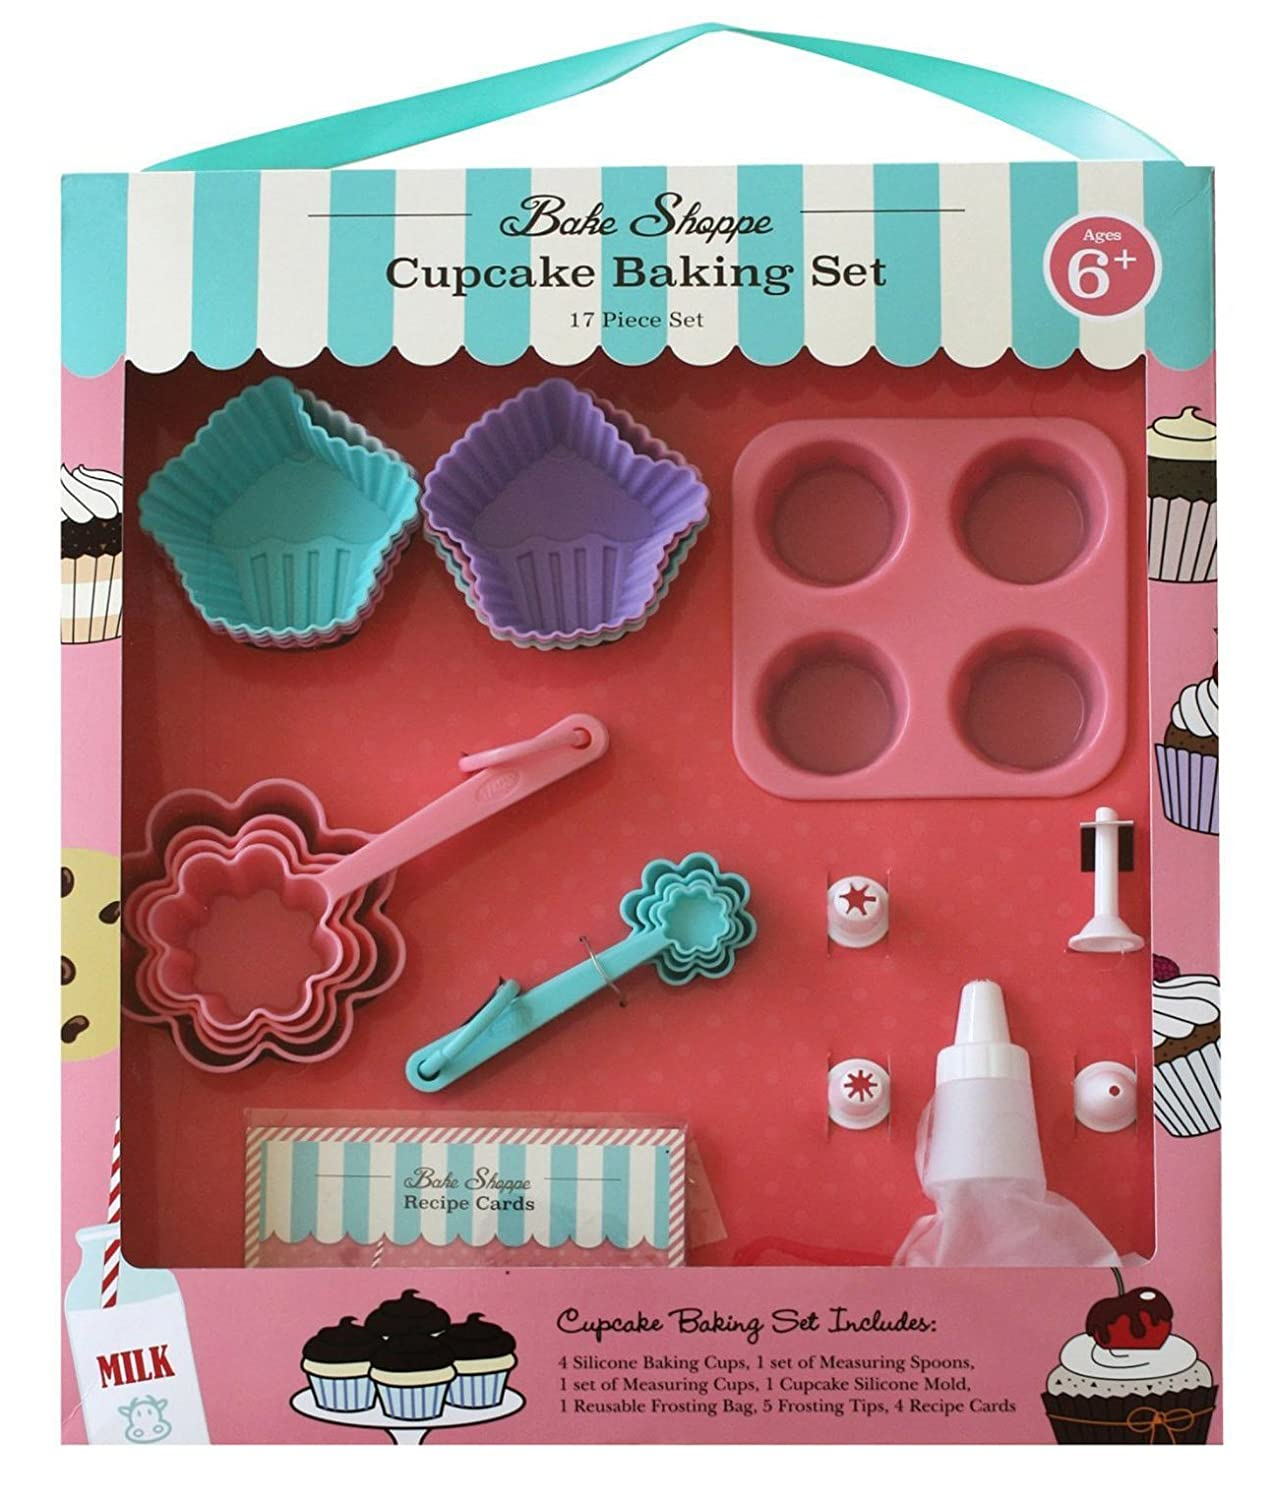 Handstand Kitchen Bake Shoppe 17-piece Real Cupcake Baking Set with Recipes for Kids Handstand Kids LLC BKS102